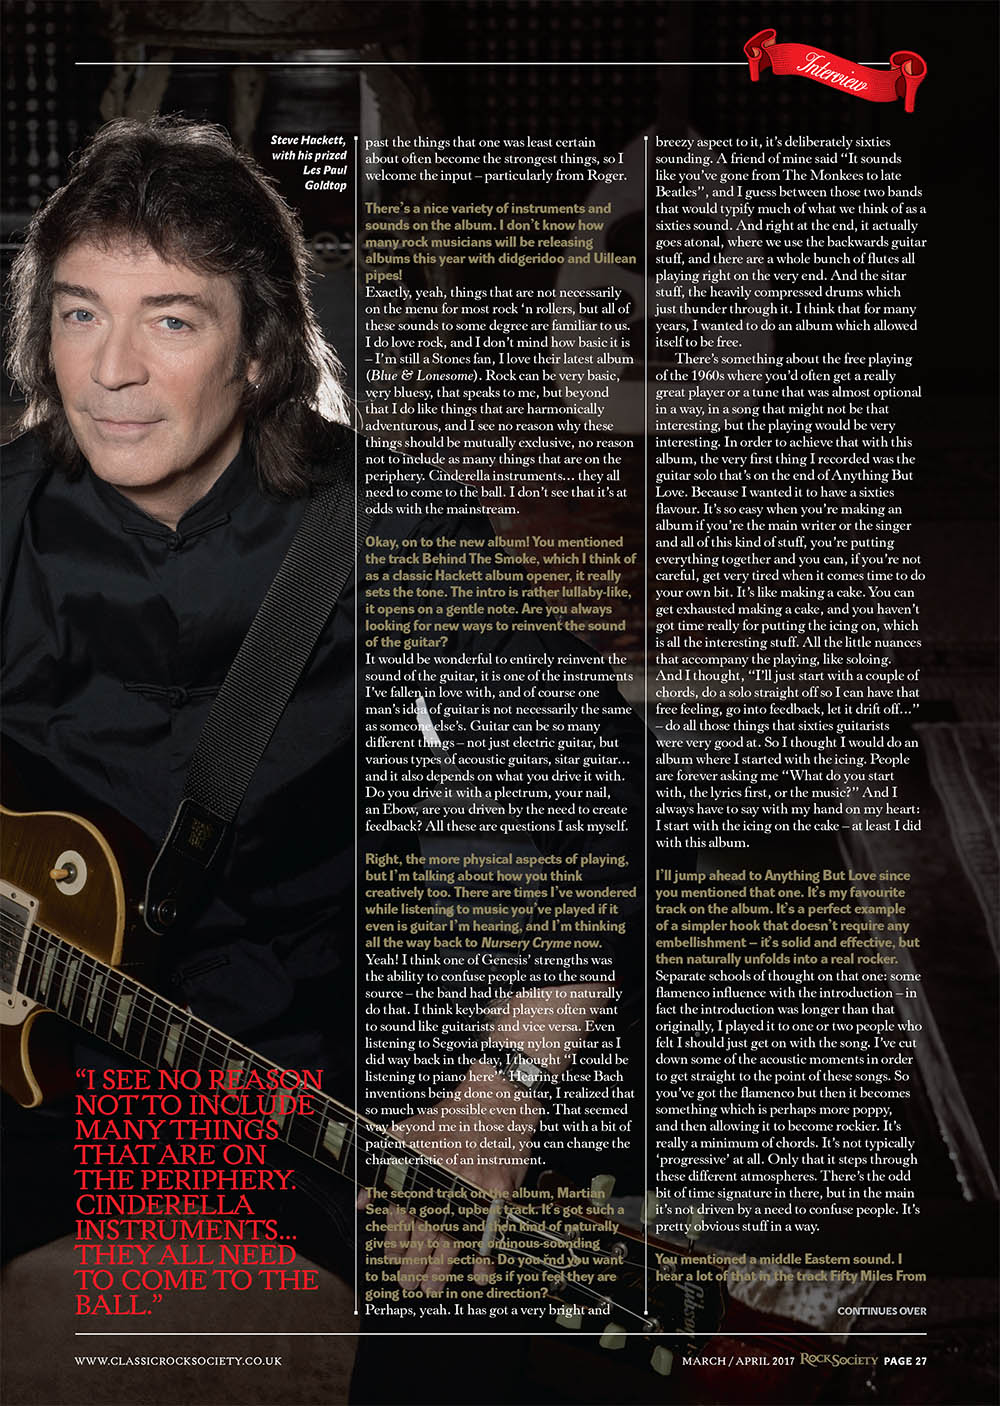 Classic Rock Society Magazine Steve Hackett interview